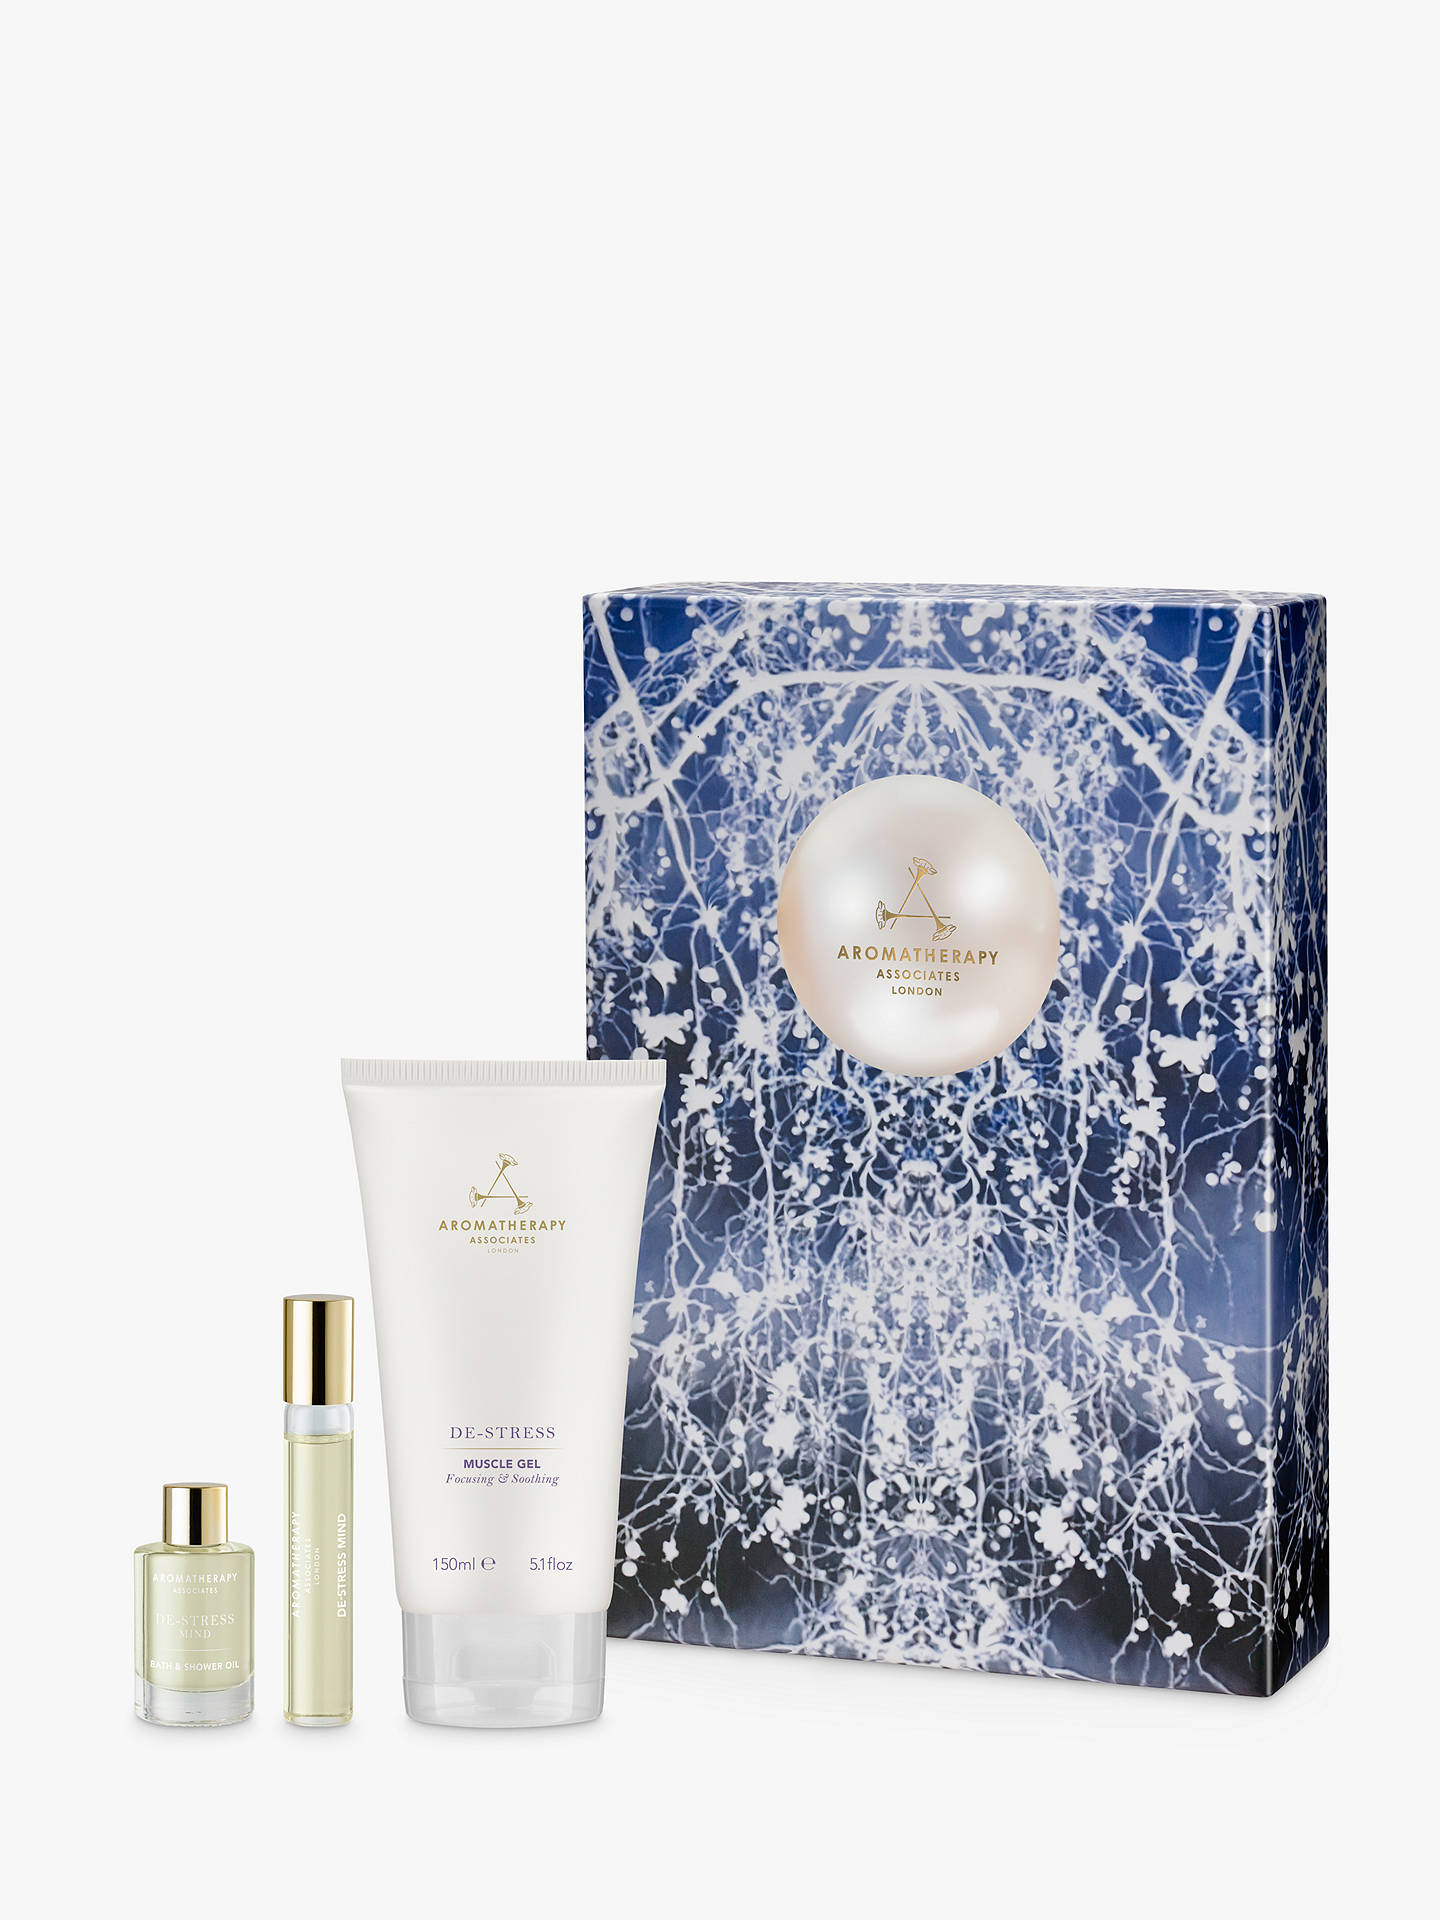 Buy Aromatherapy Associates Self Care Your Health Care Body Care Gift Set Online at johnlewis.com